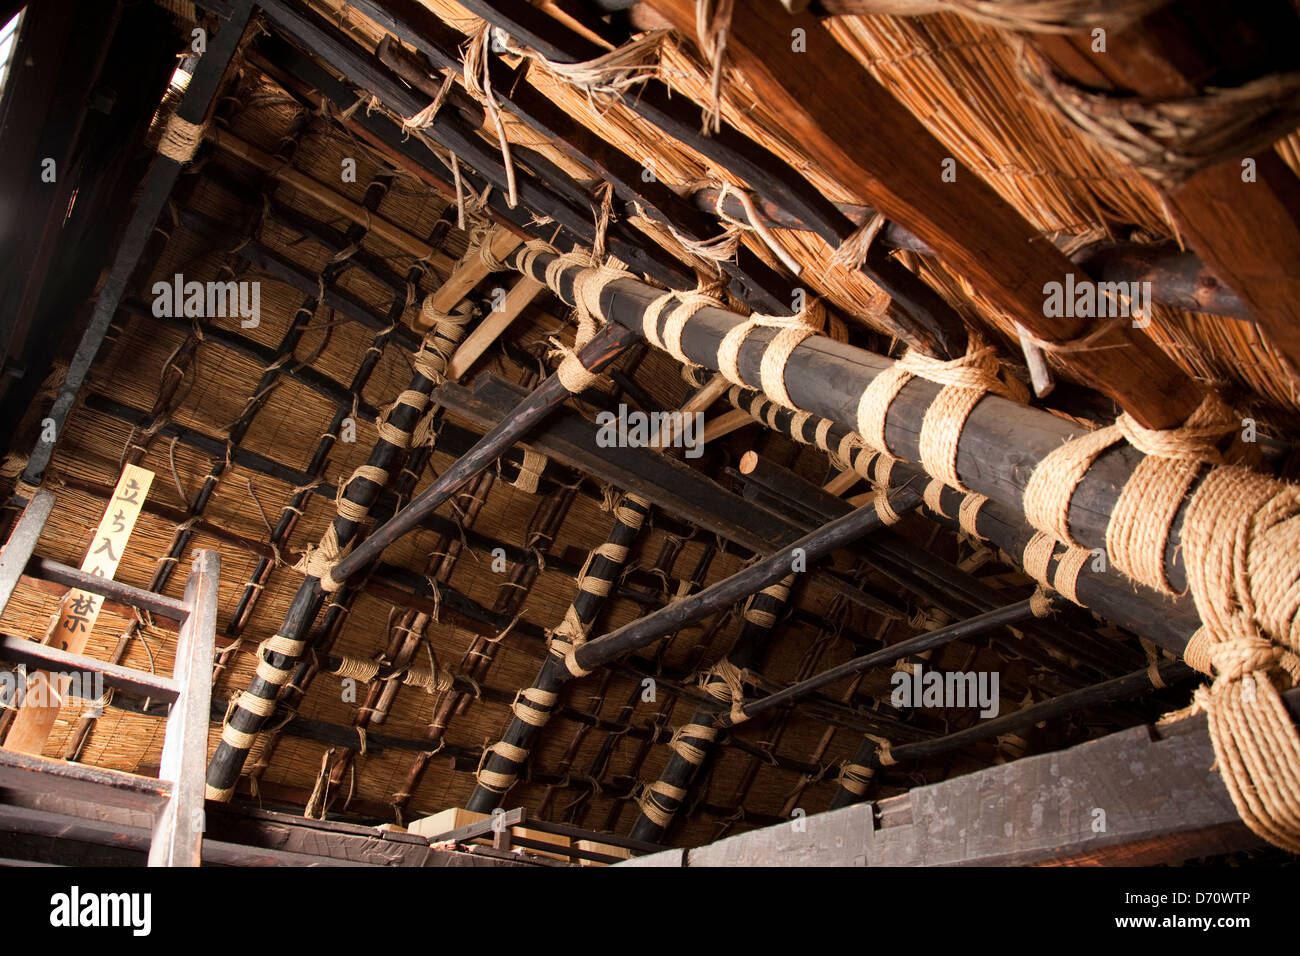 Interior of the steep, thatched roof of a Gassho house in the UNESCO village of Shirakawa-go, Japan. - Stock Image